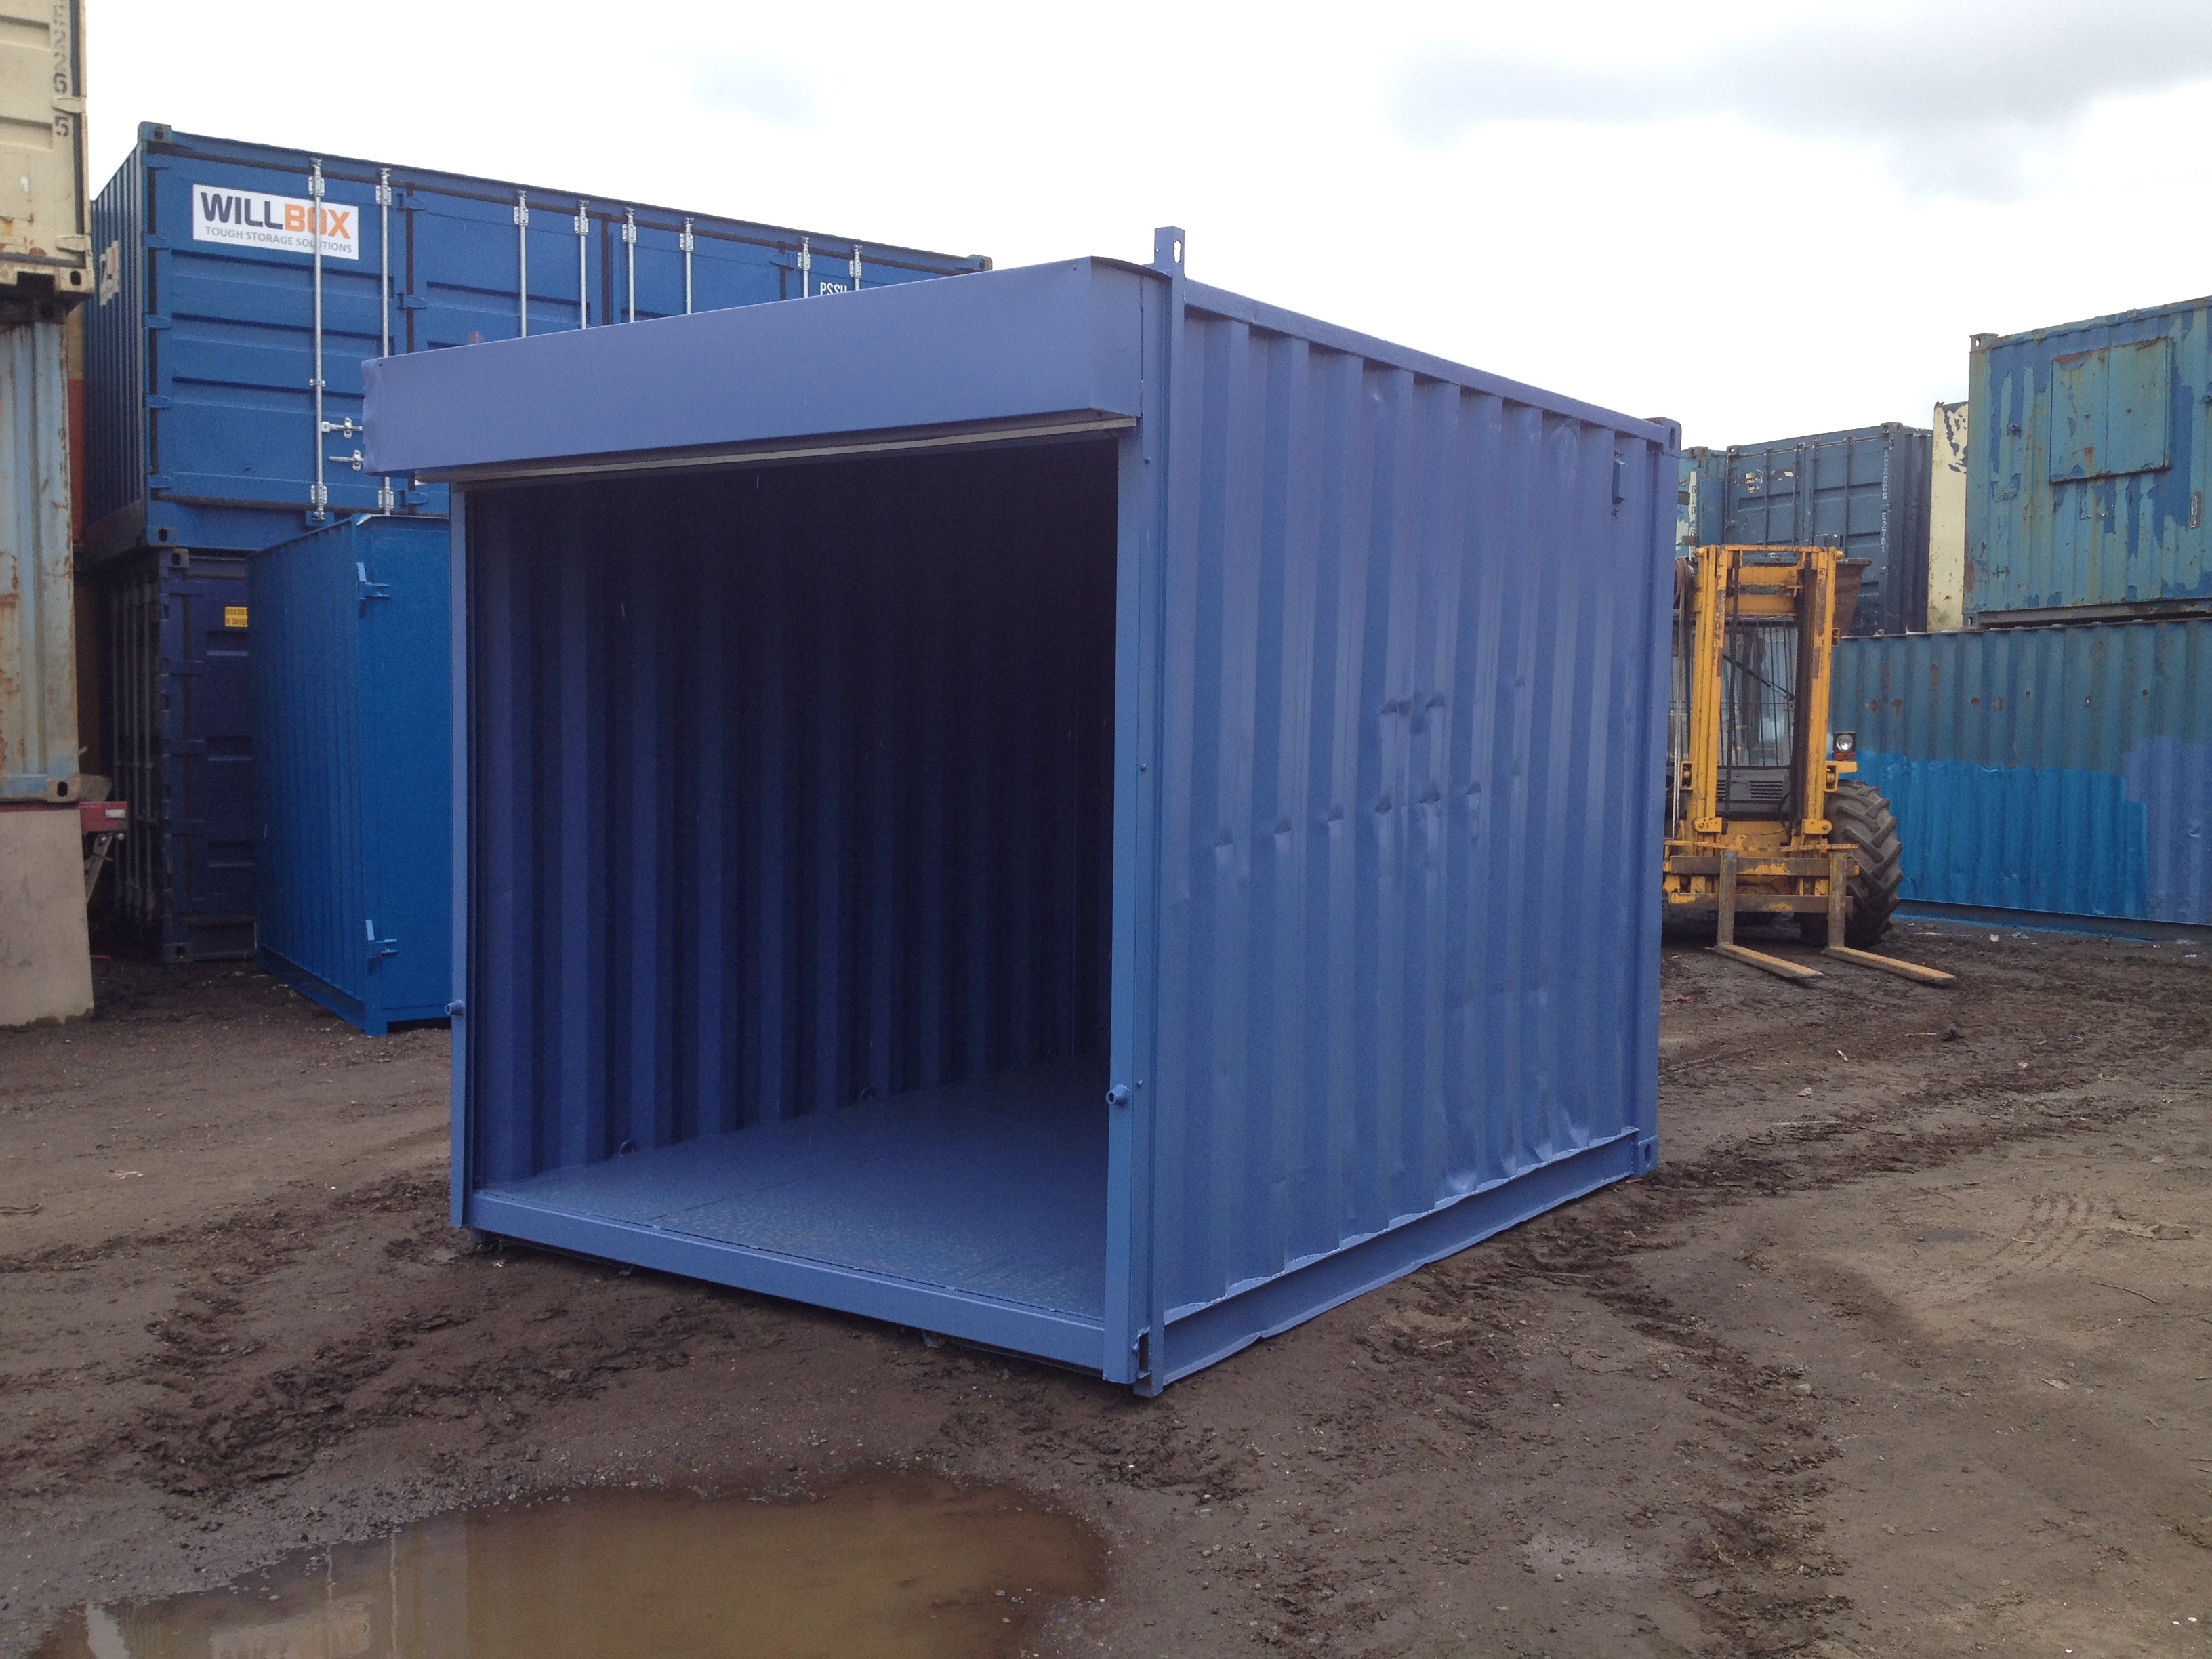 10ft x 8ft Blue Used Shipping Container With Roller Shutter